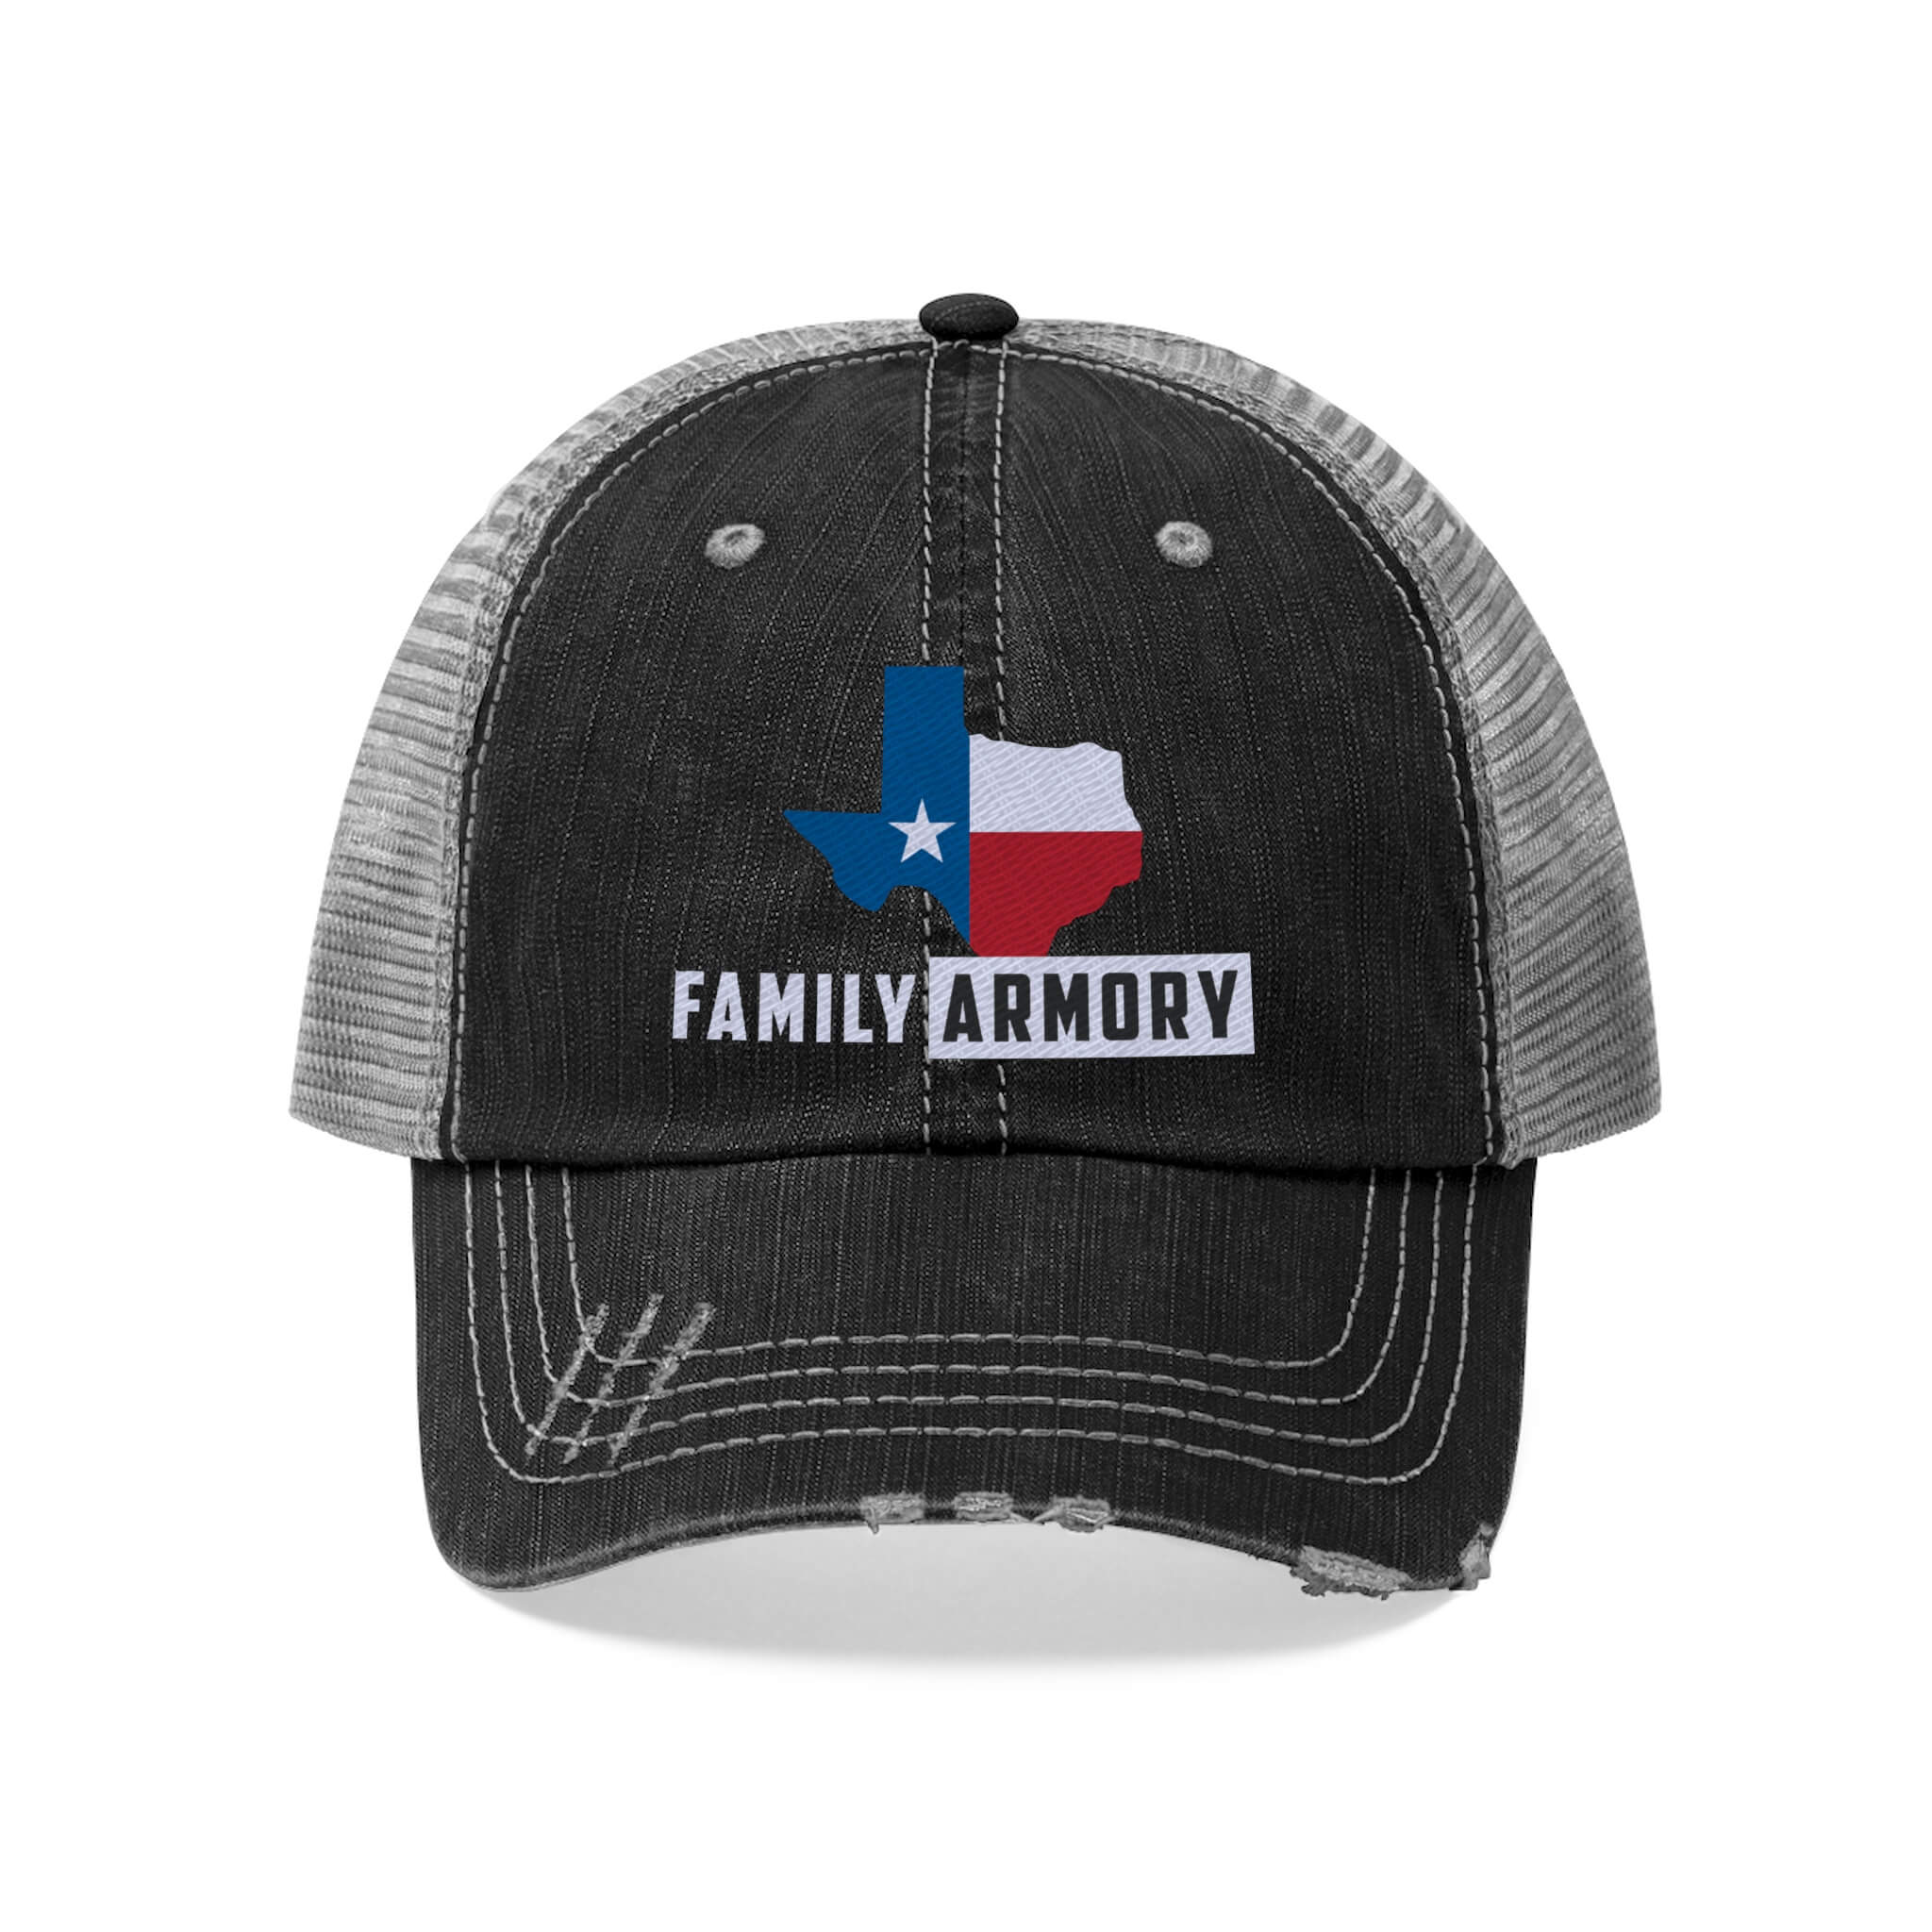 Family Armory Trucker Hat